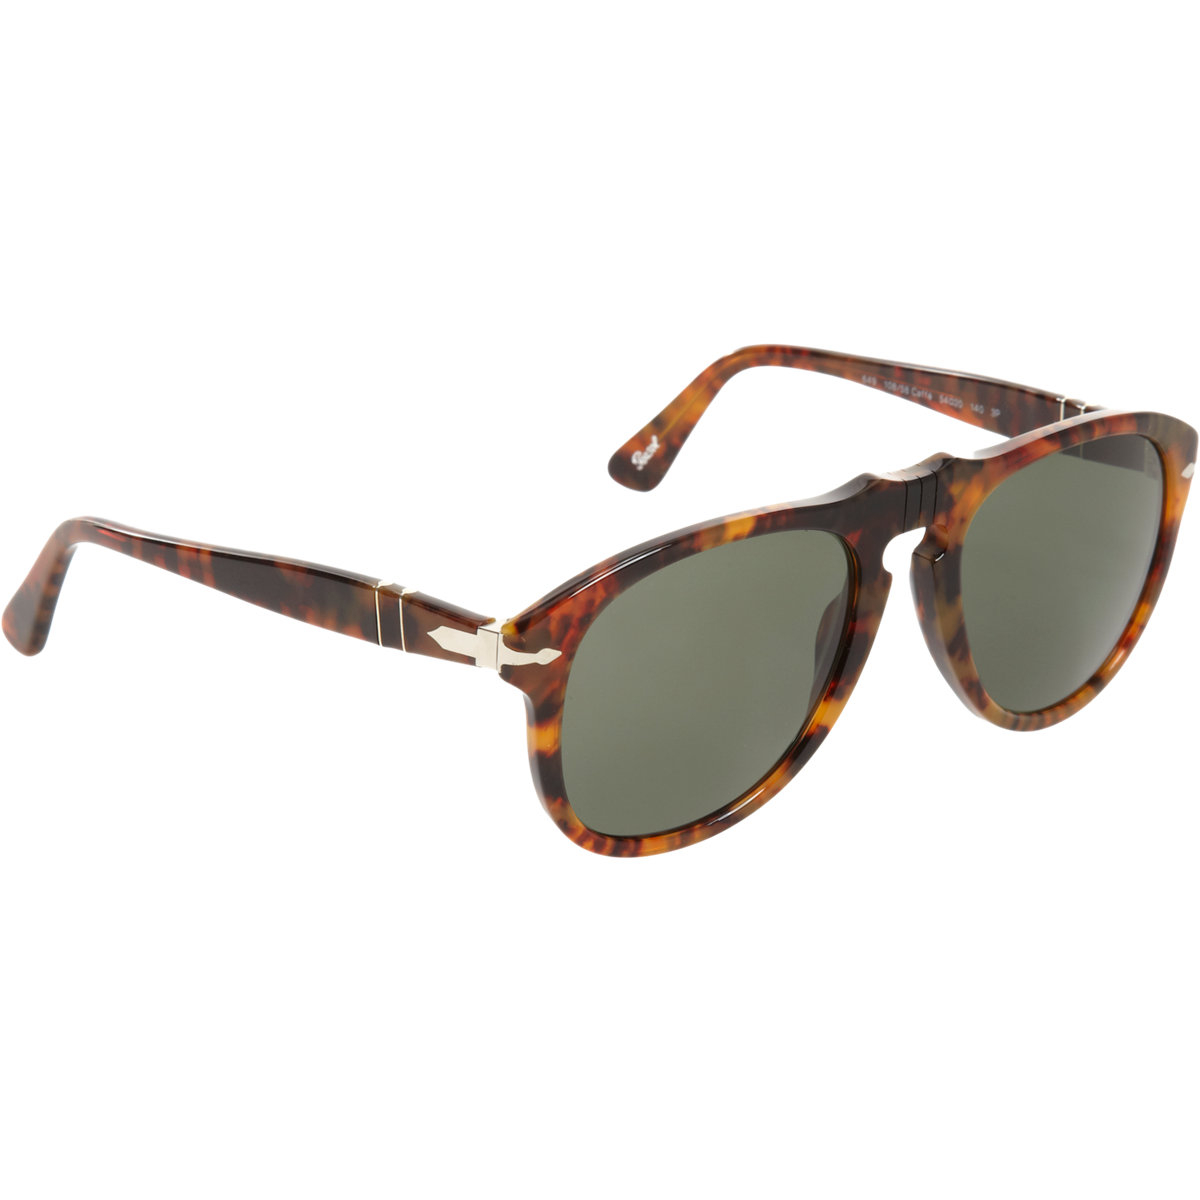 3b8babdc2d60 Persol Round Tortoise Frame Sunglasses in Brown for Men - Lyst